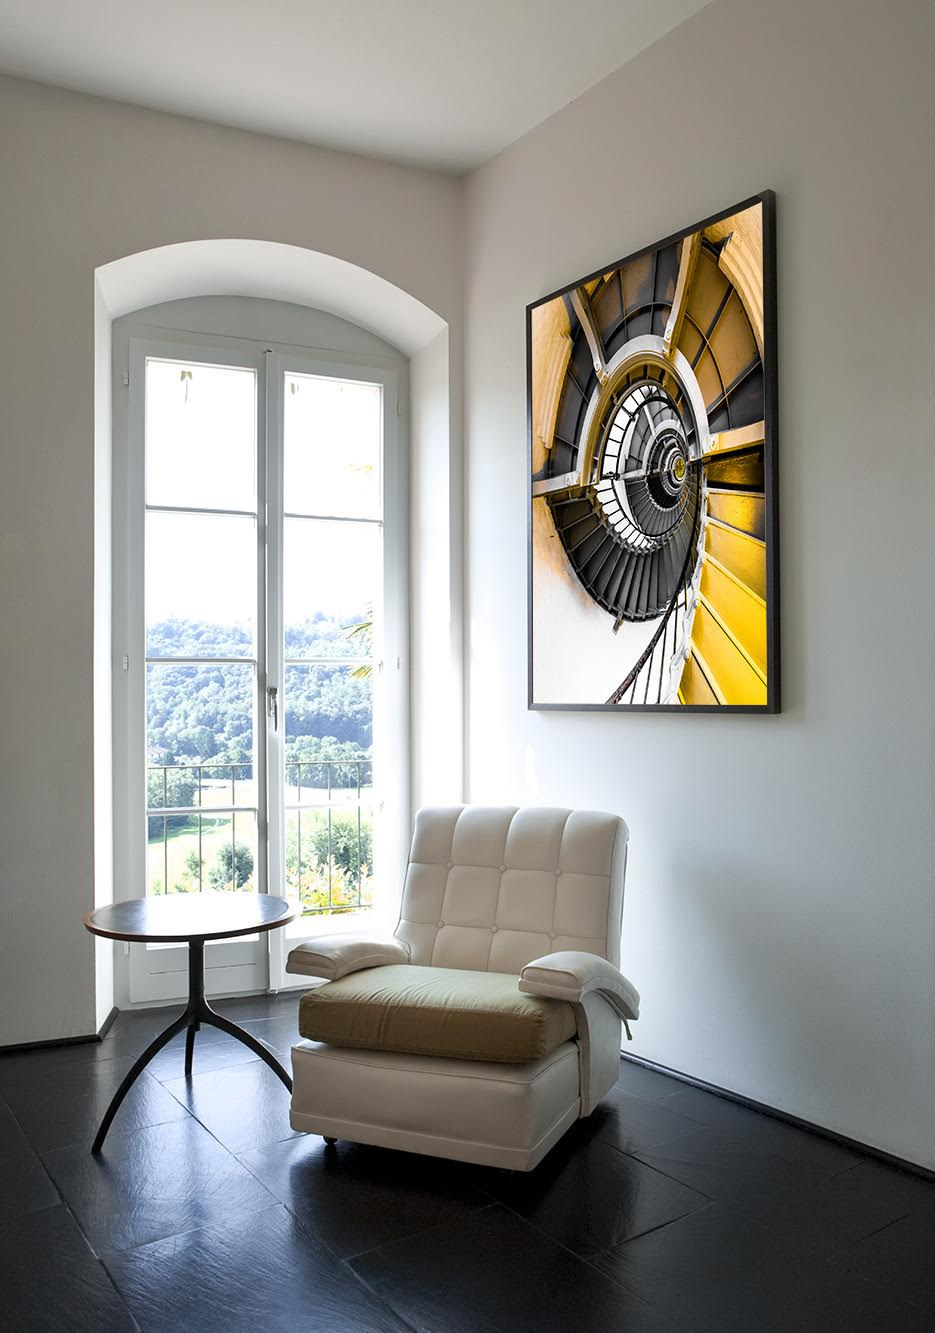 Metal Swirl in a contemporary home setting